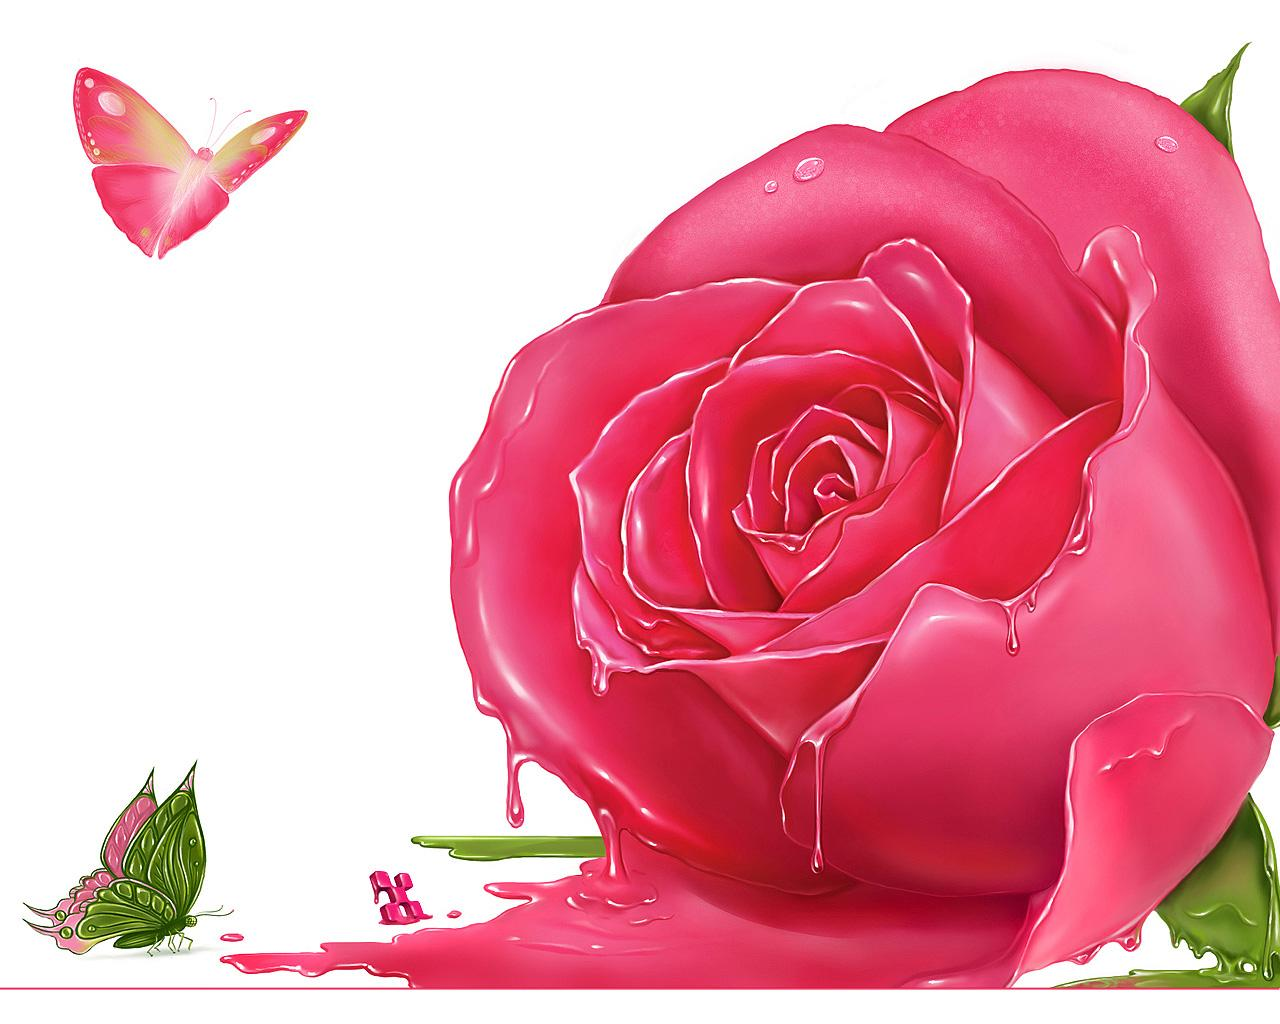 ��� ���� �������� 2013, ���� ����� , ������ ��� 2013 pink20rose_wallpaper